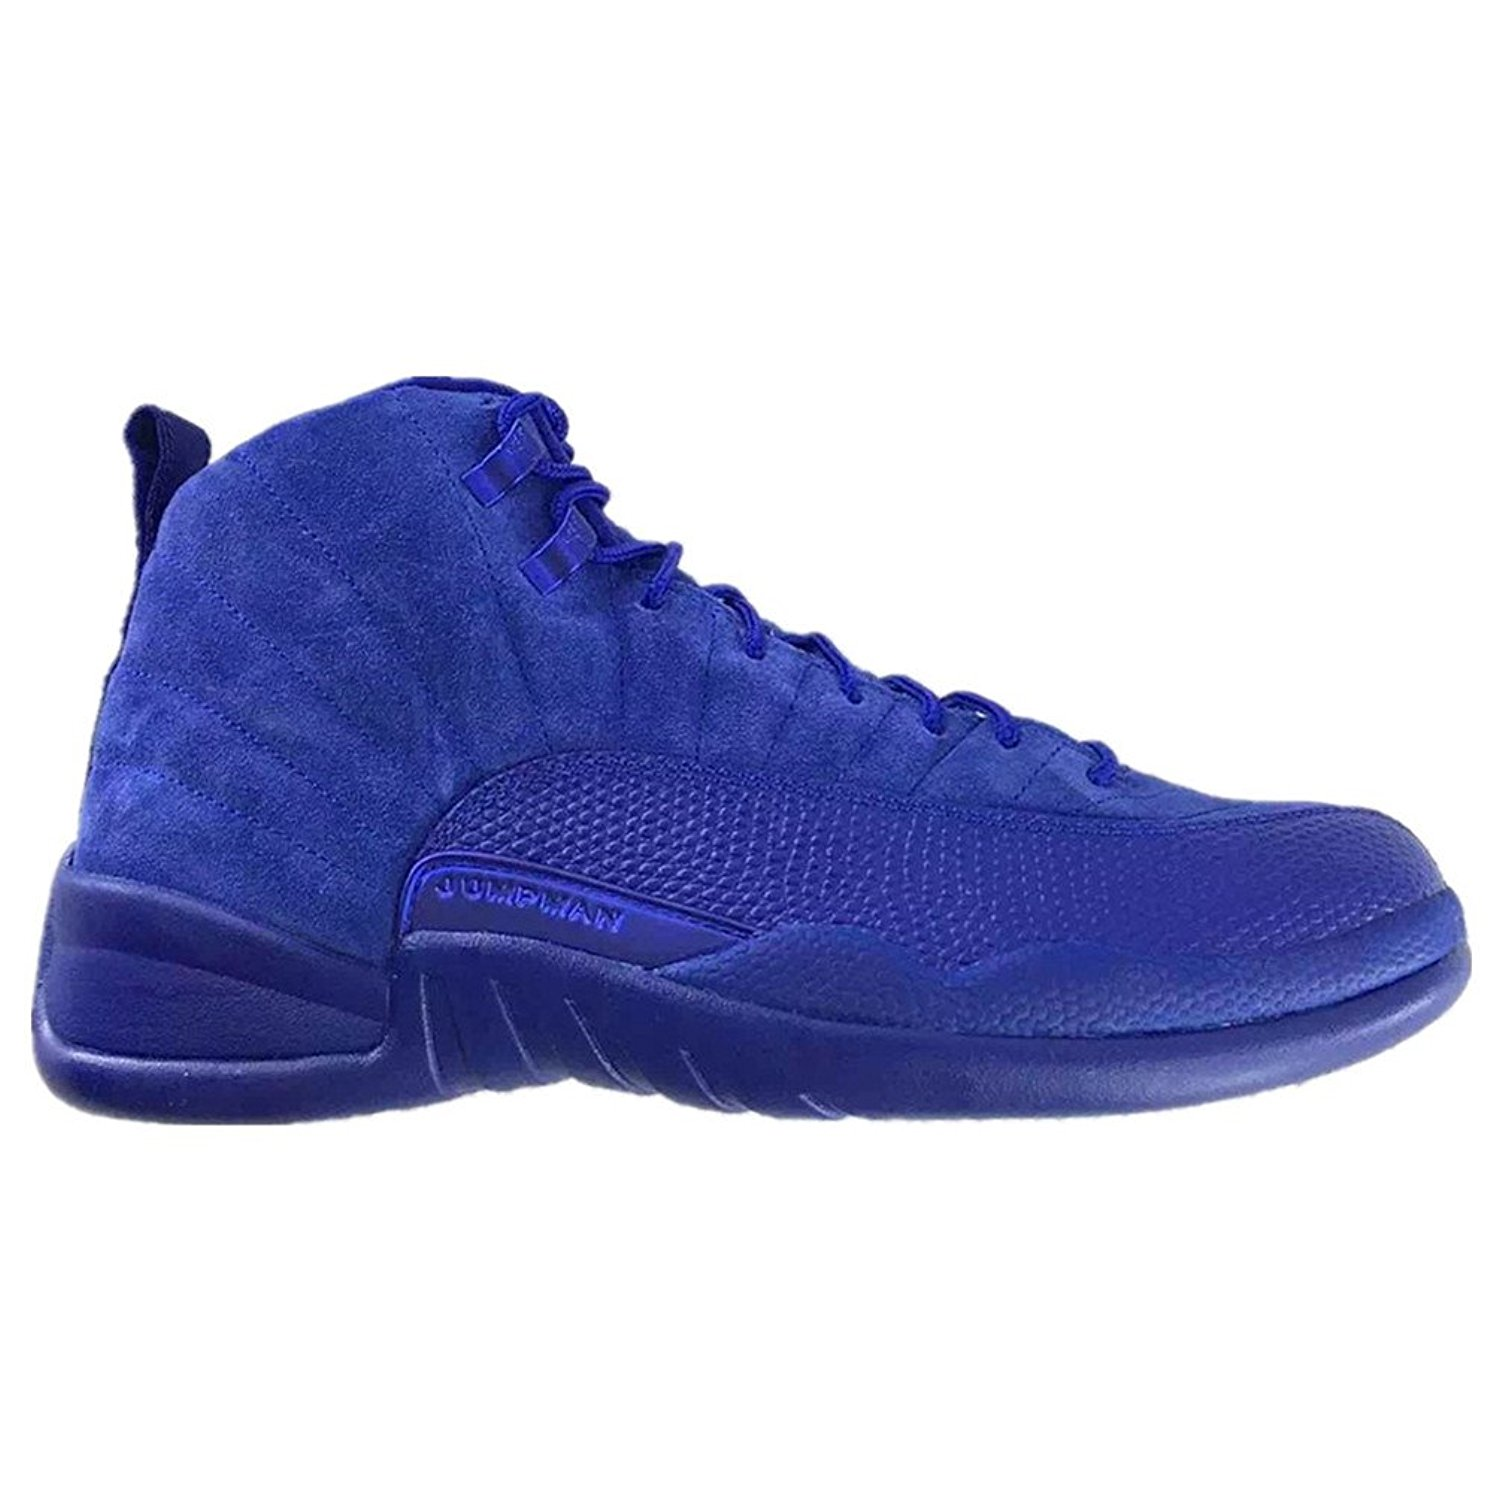 f9293e820f99f9 Get Quotations · Air Jordan 12 Premium Royal Blue AJ12 Basketball Shoes  130690-400 Men US8